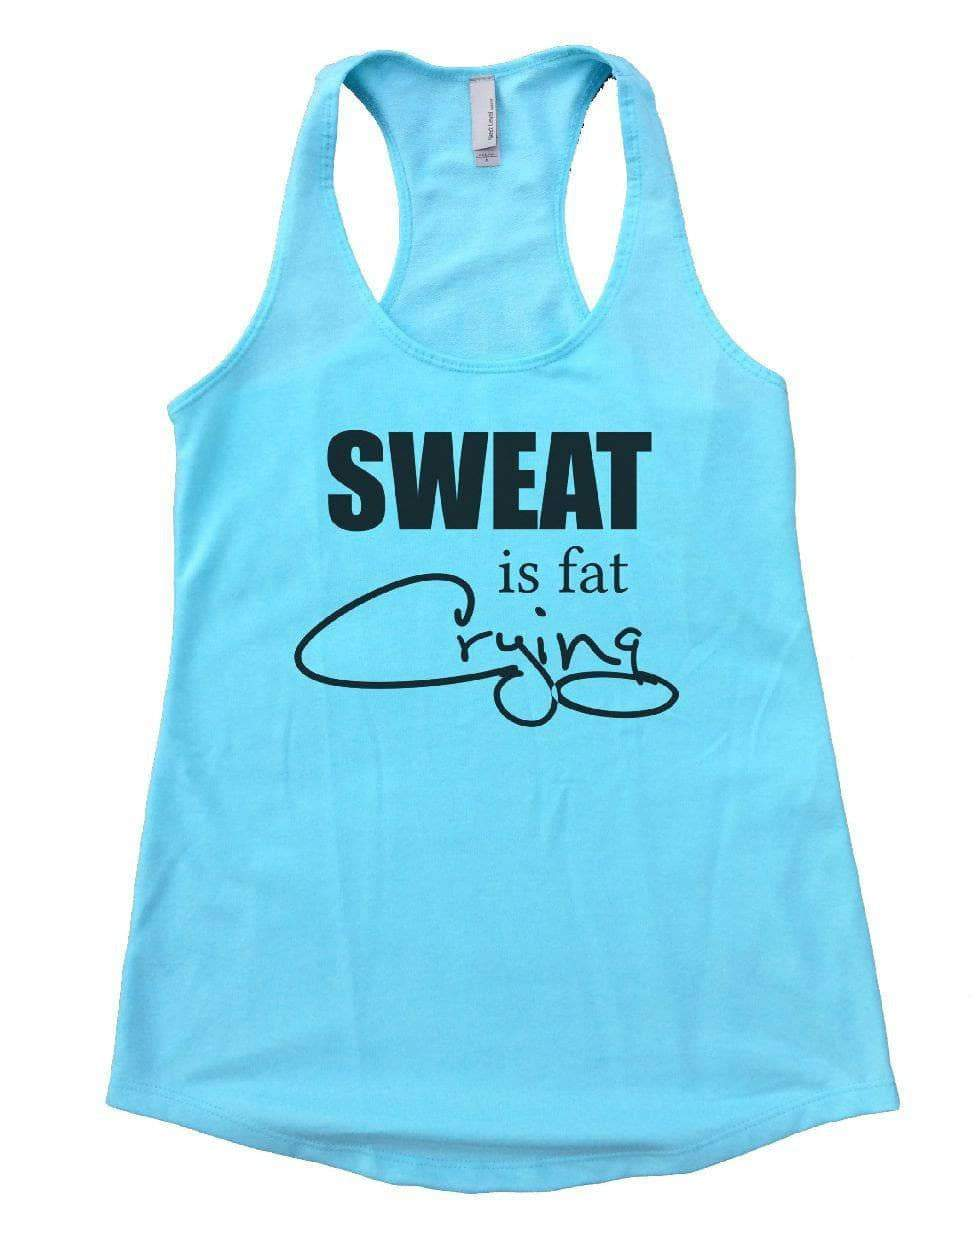 SWEAT Is Fat Crying Womens Workout Tank Top Small Womens Tank Tops Cancun Blue